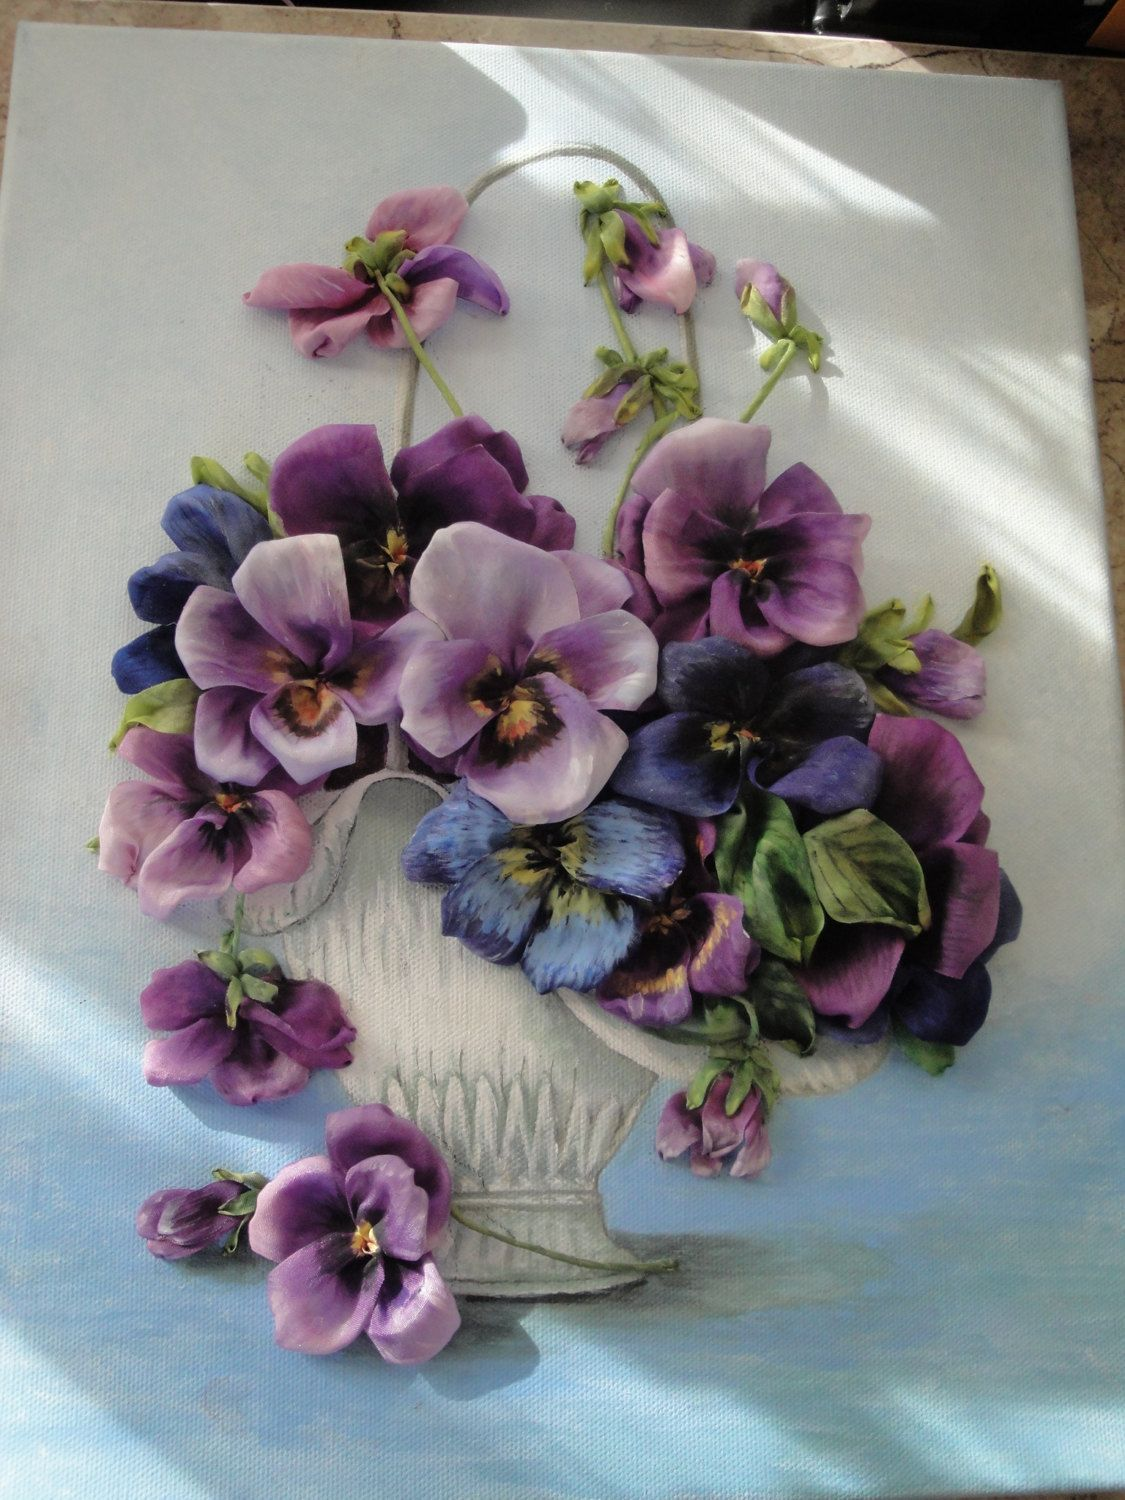 Silk Ribbon Embroidery : ribbon, embroidery, Ribbon, Embroidery, Pensy, Embroidery,, Flowers